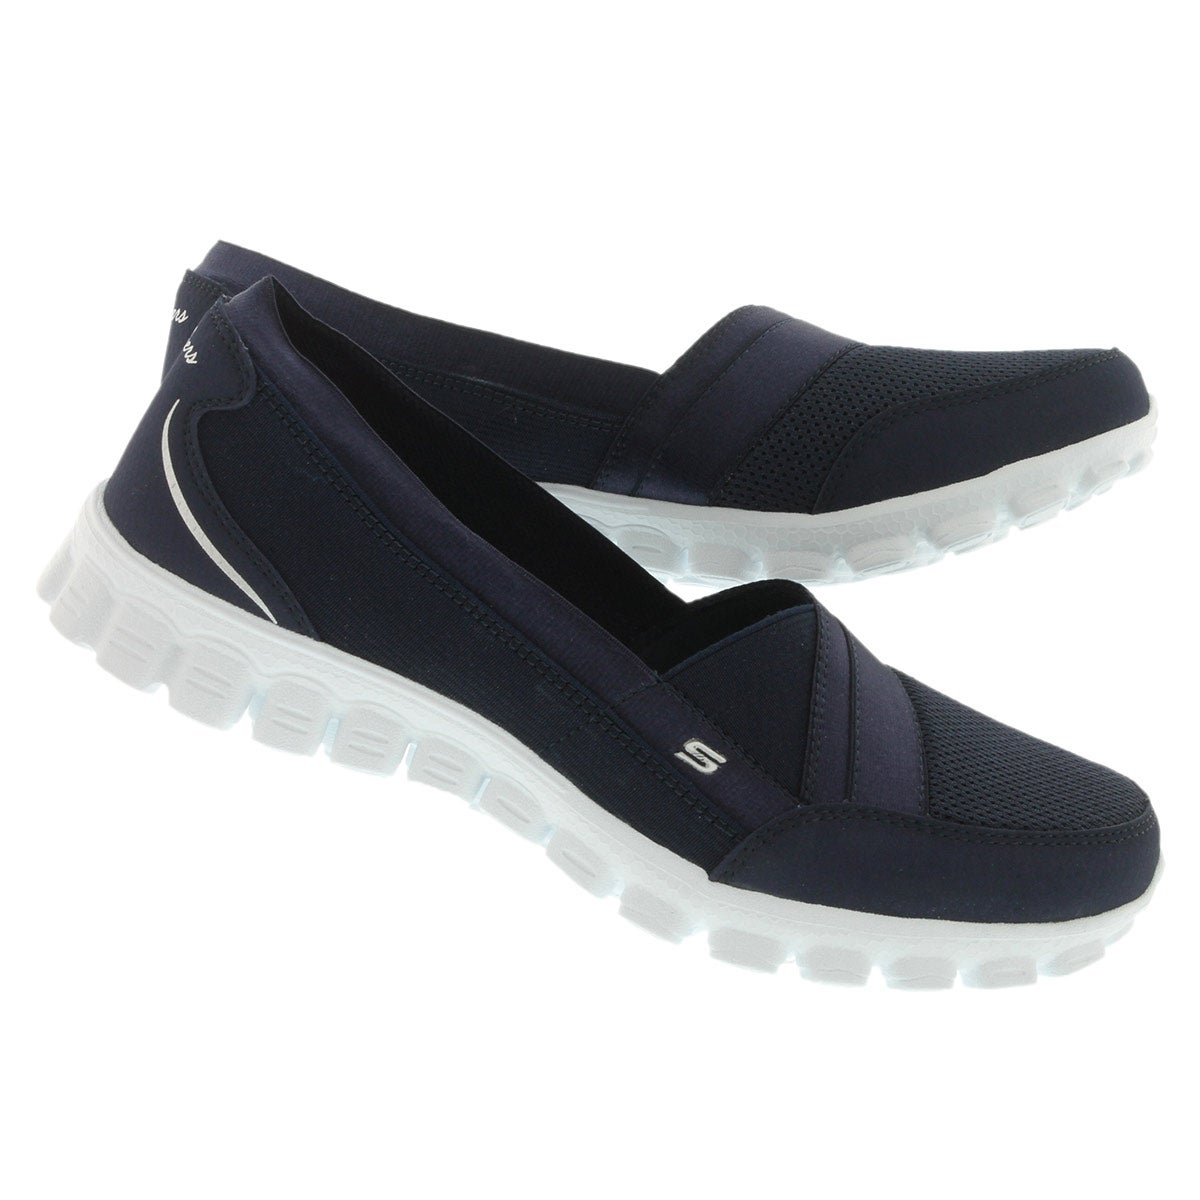 Lds Quipster navy slipon walking shoe